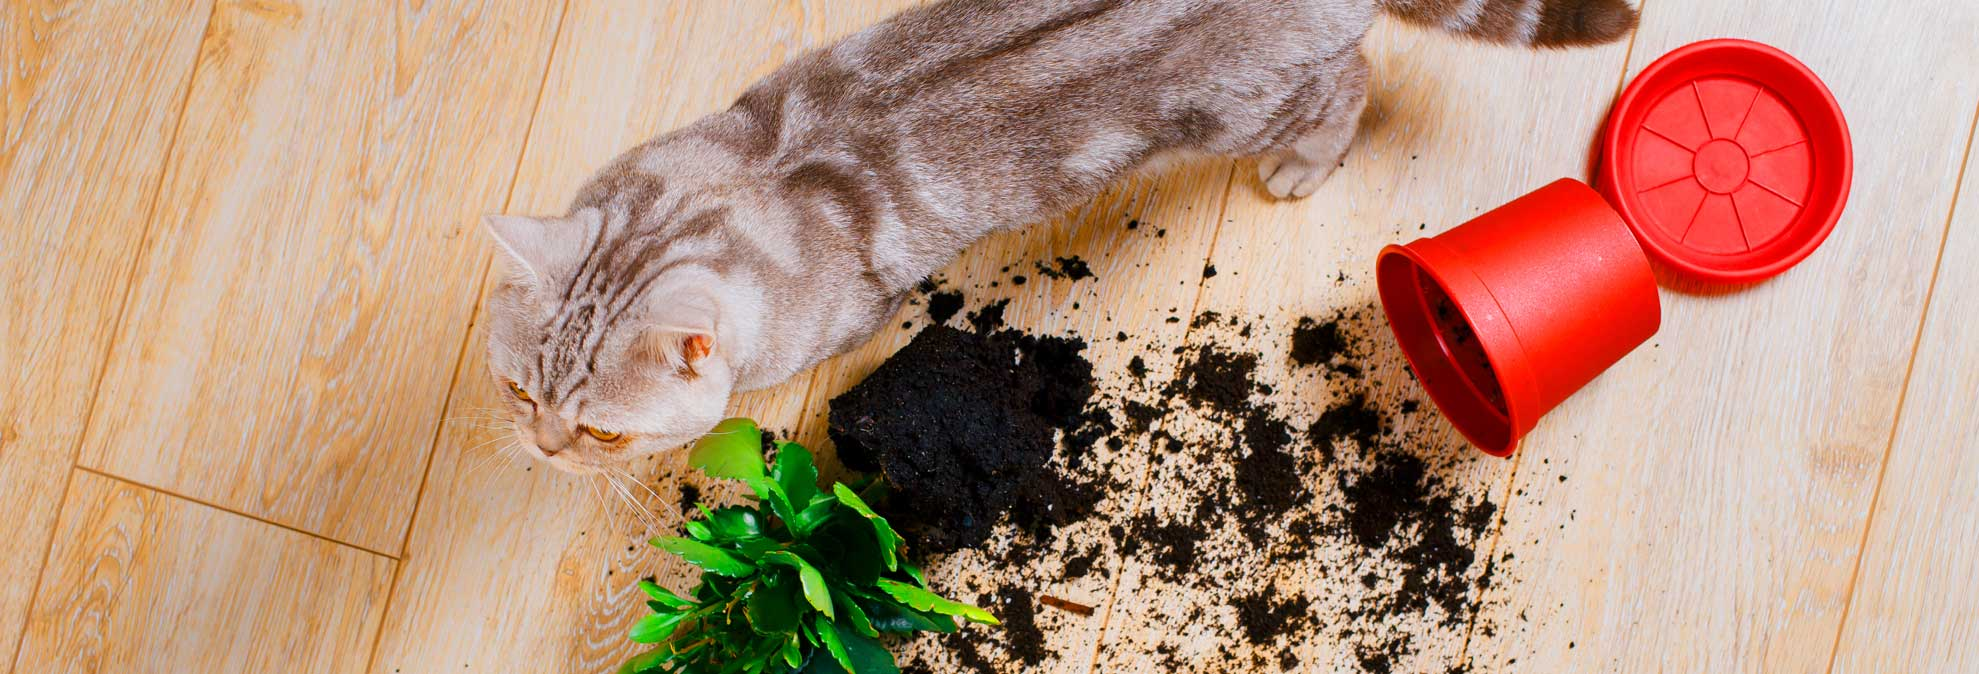 A cat knocking over a plant on hardwood floors